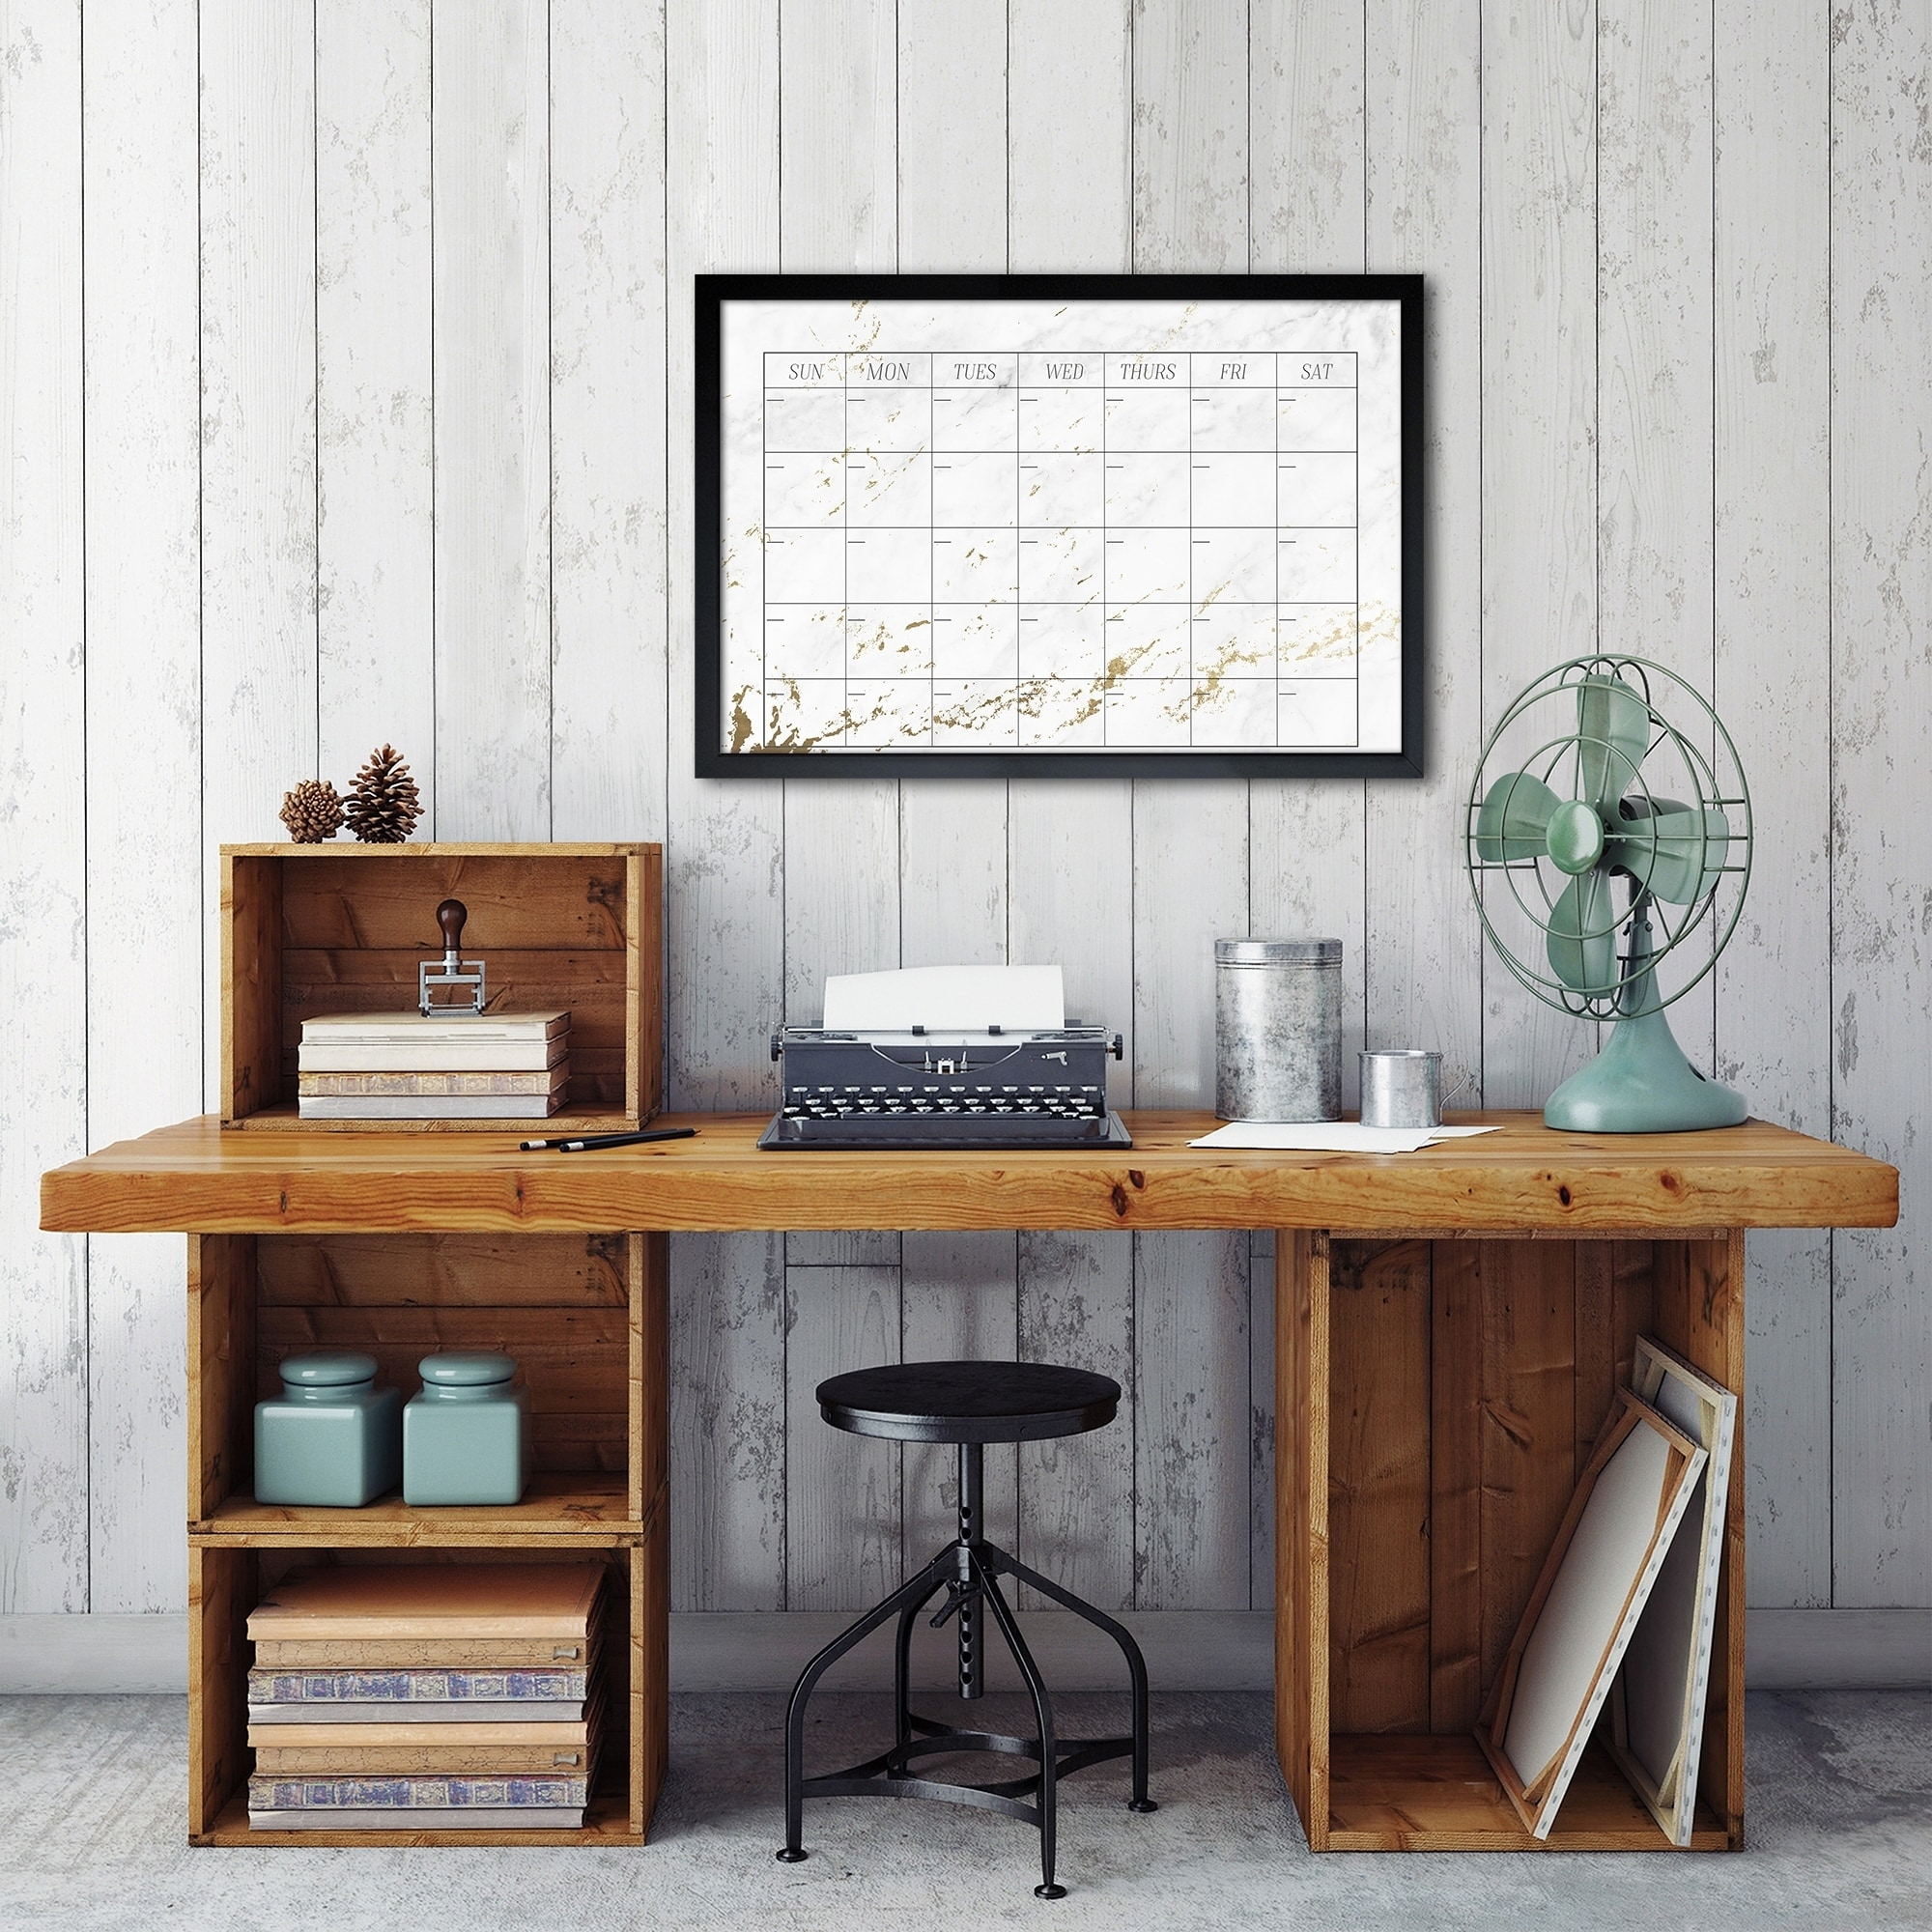 Shop oliver gal stylish marble calendar design home office dry erase board on sale ships to canada overstock ca 17288896